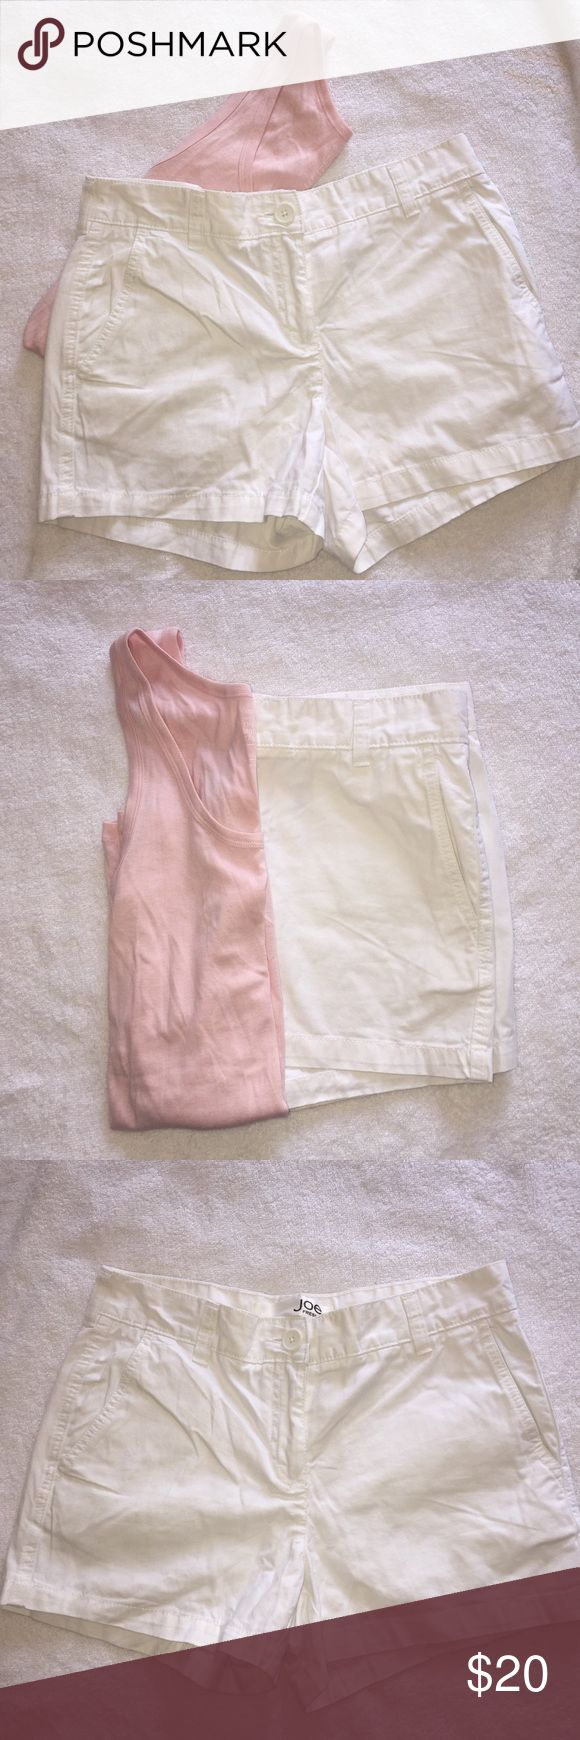 "White JOE Fresh Shorts ❣️ In very good condition! Size 2. Waist straight across 15"". Back rise 12"". Front rise 10"". Feel free to make an offer! No trades ❌ No modeling Joe Fresh Shorts"